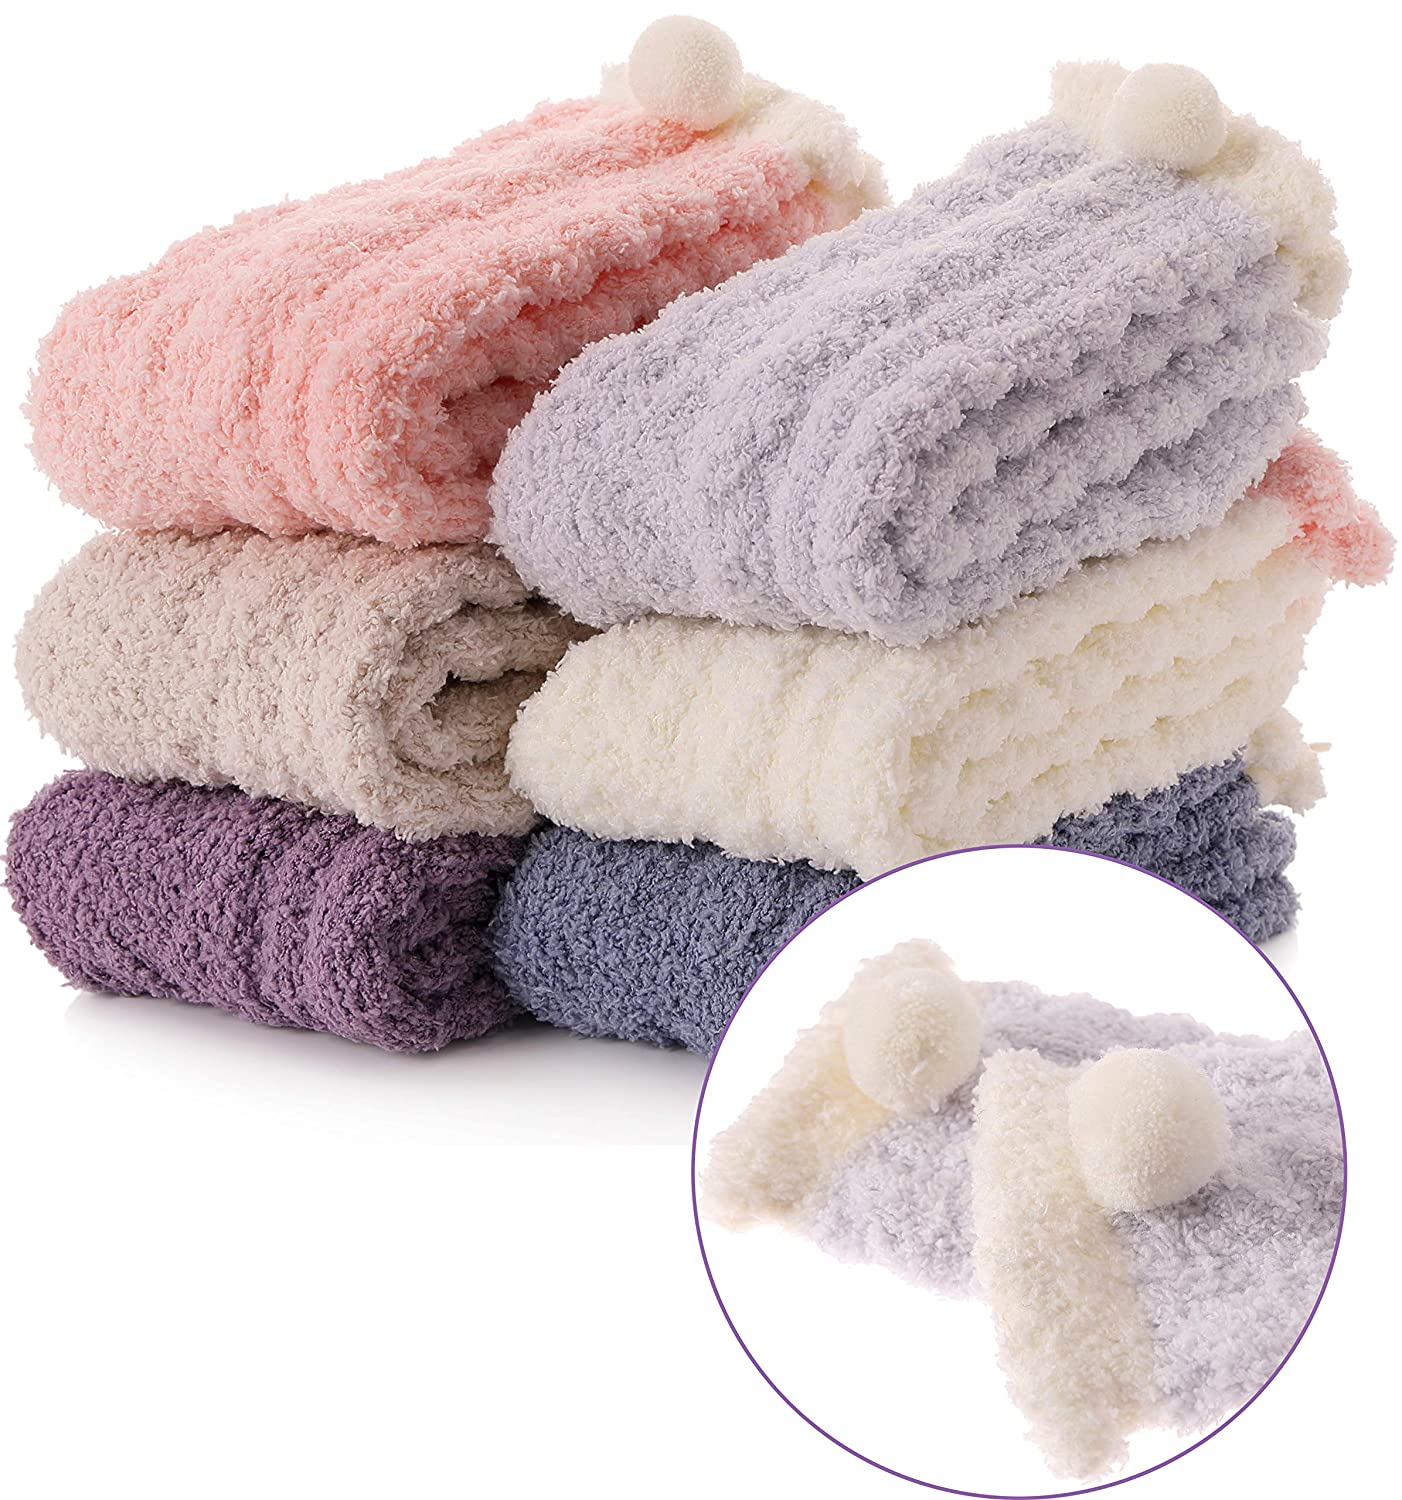 Womens Fuzzy Slipper Socks Soft Cabin Warm Cute Cozy Fluffy Winter Christmas Slipper Socks 6 Pairs